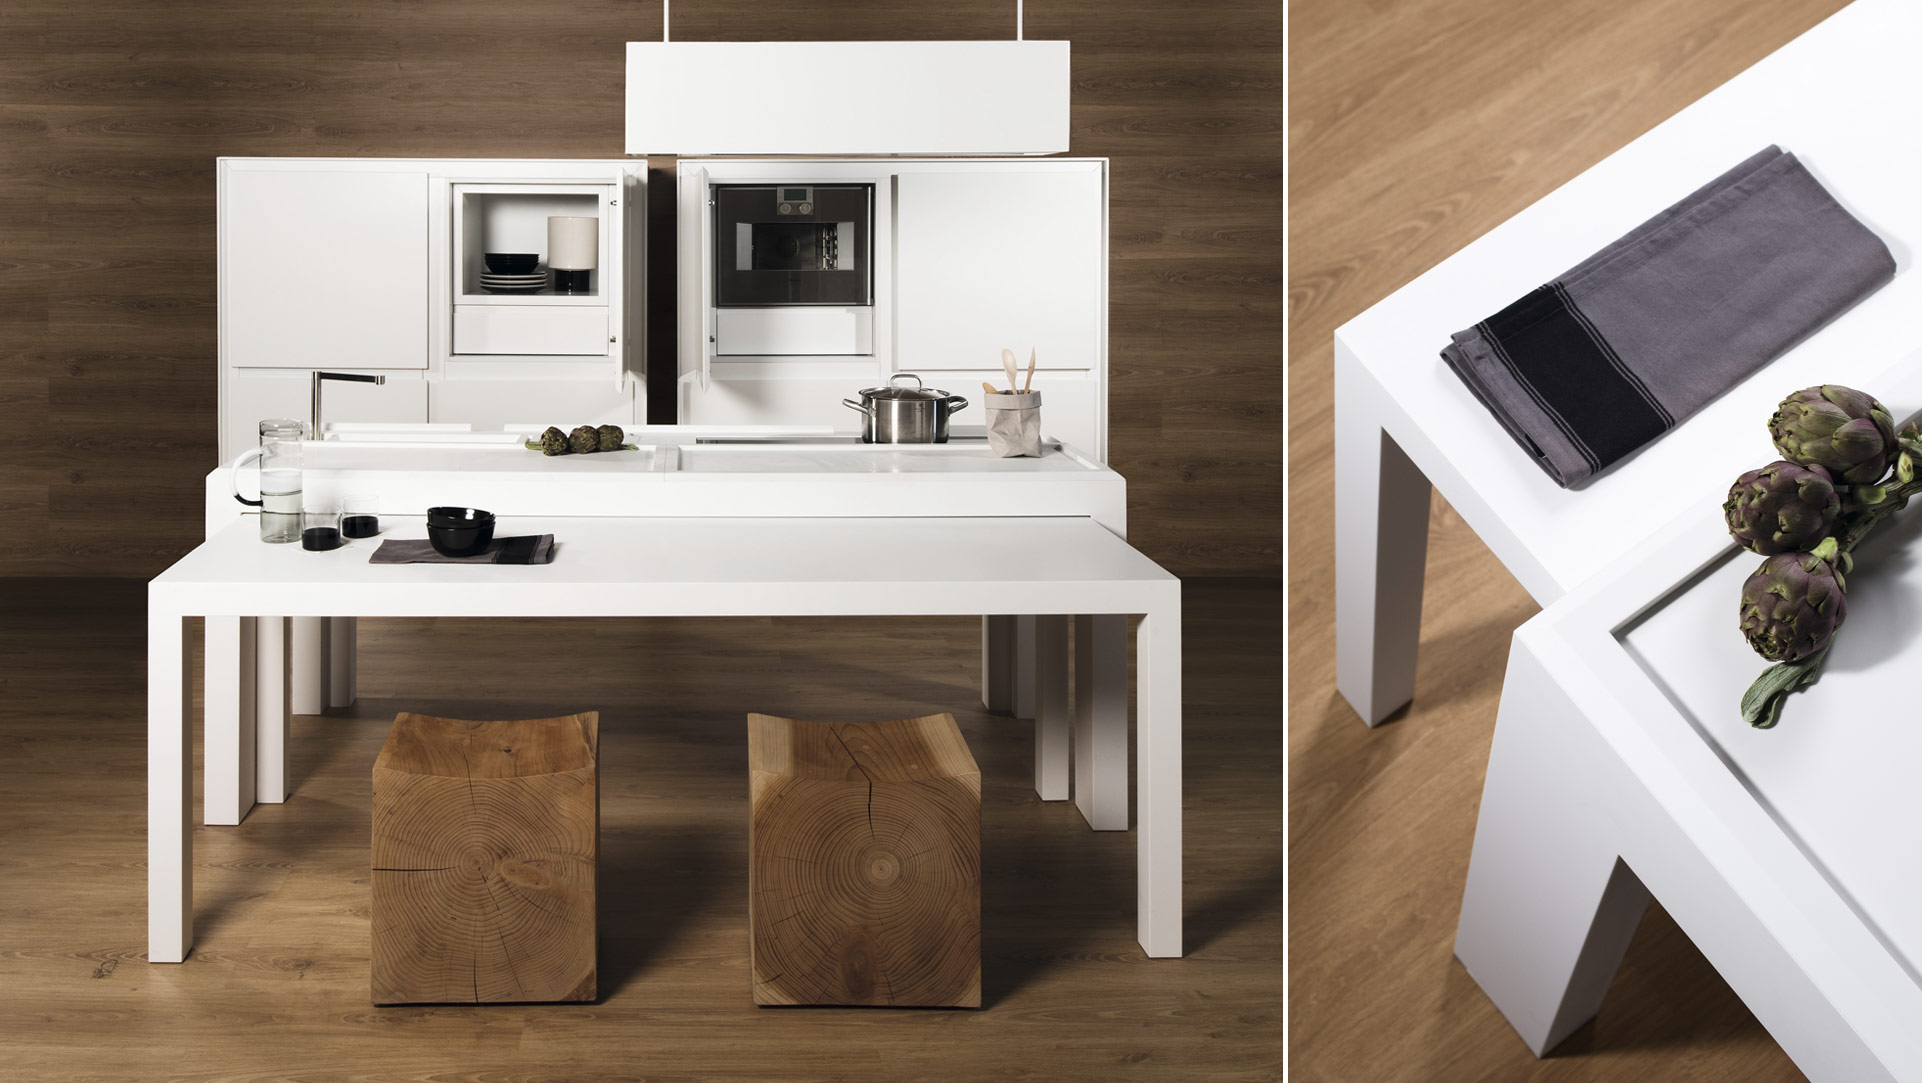 OFF KITCHEN: cucina a scomparsa freestanding per ufficio - Inspired-Lab_OFF_02b